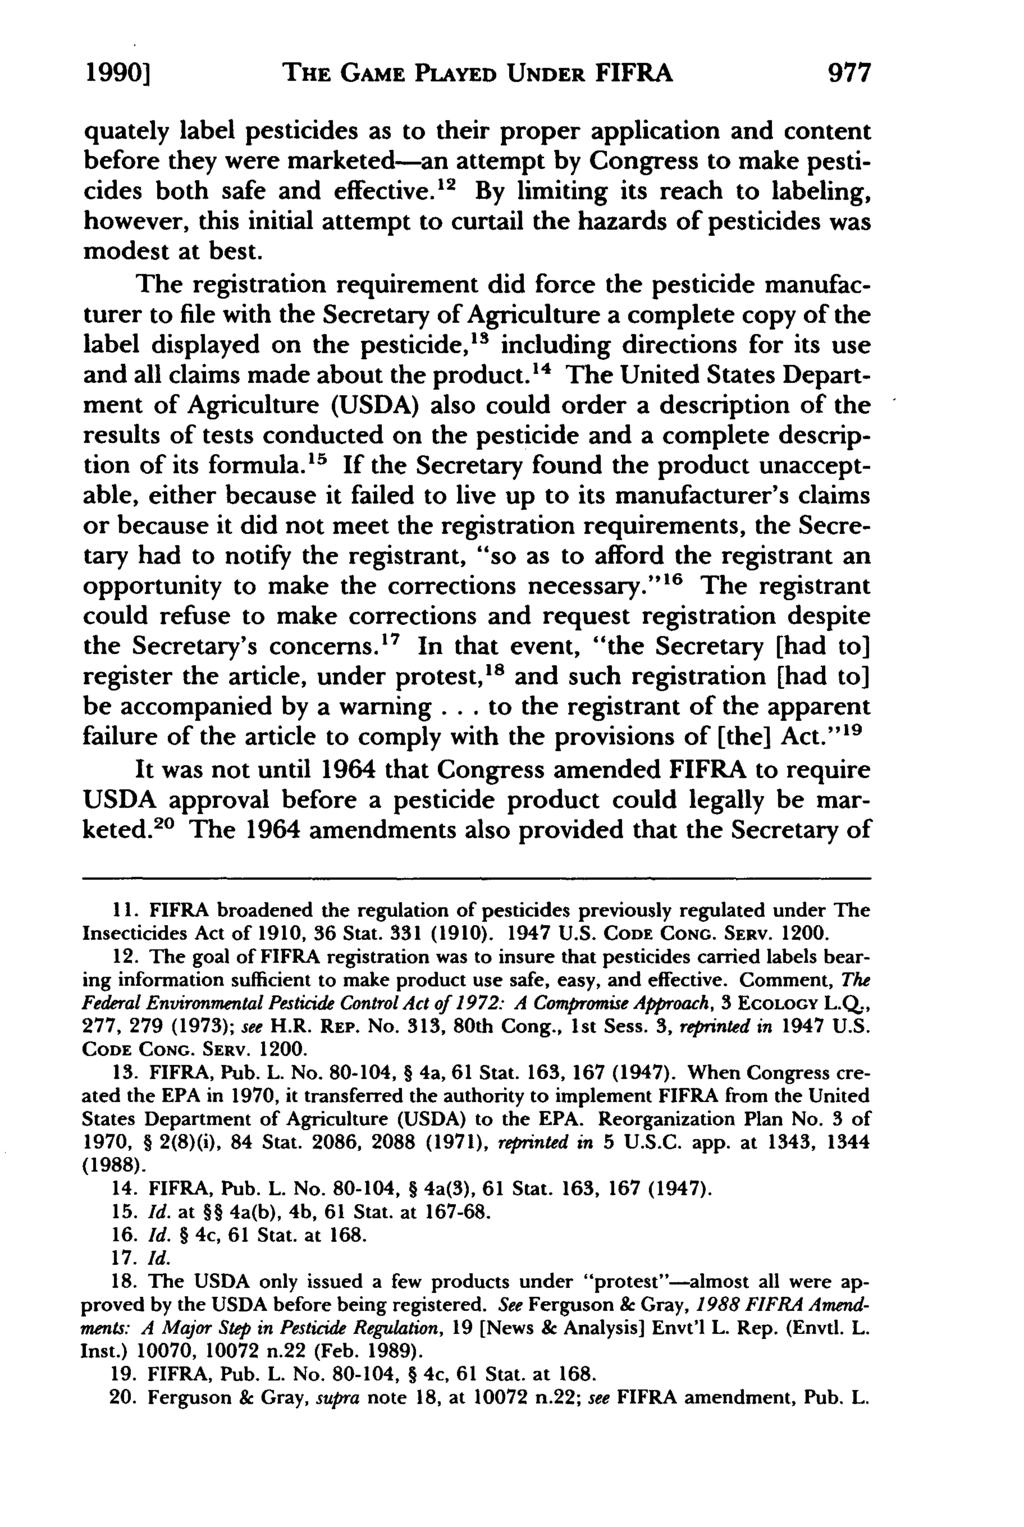 1990] THE GAME PLAYED UNDER FIFRA 977 quately label pesticides as to their proper application and content before they were marketed-an attempt by Congress to make pesticides both safe and effective.